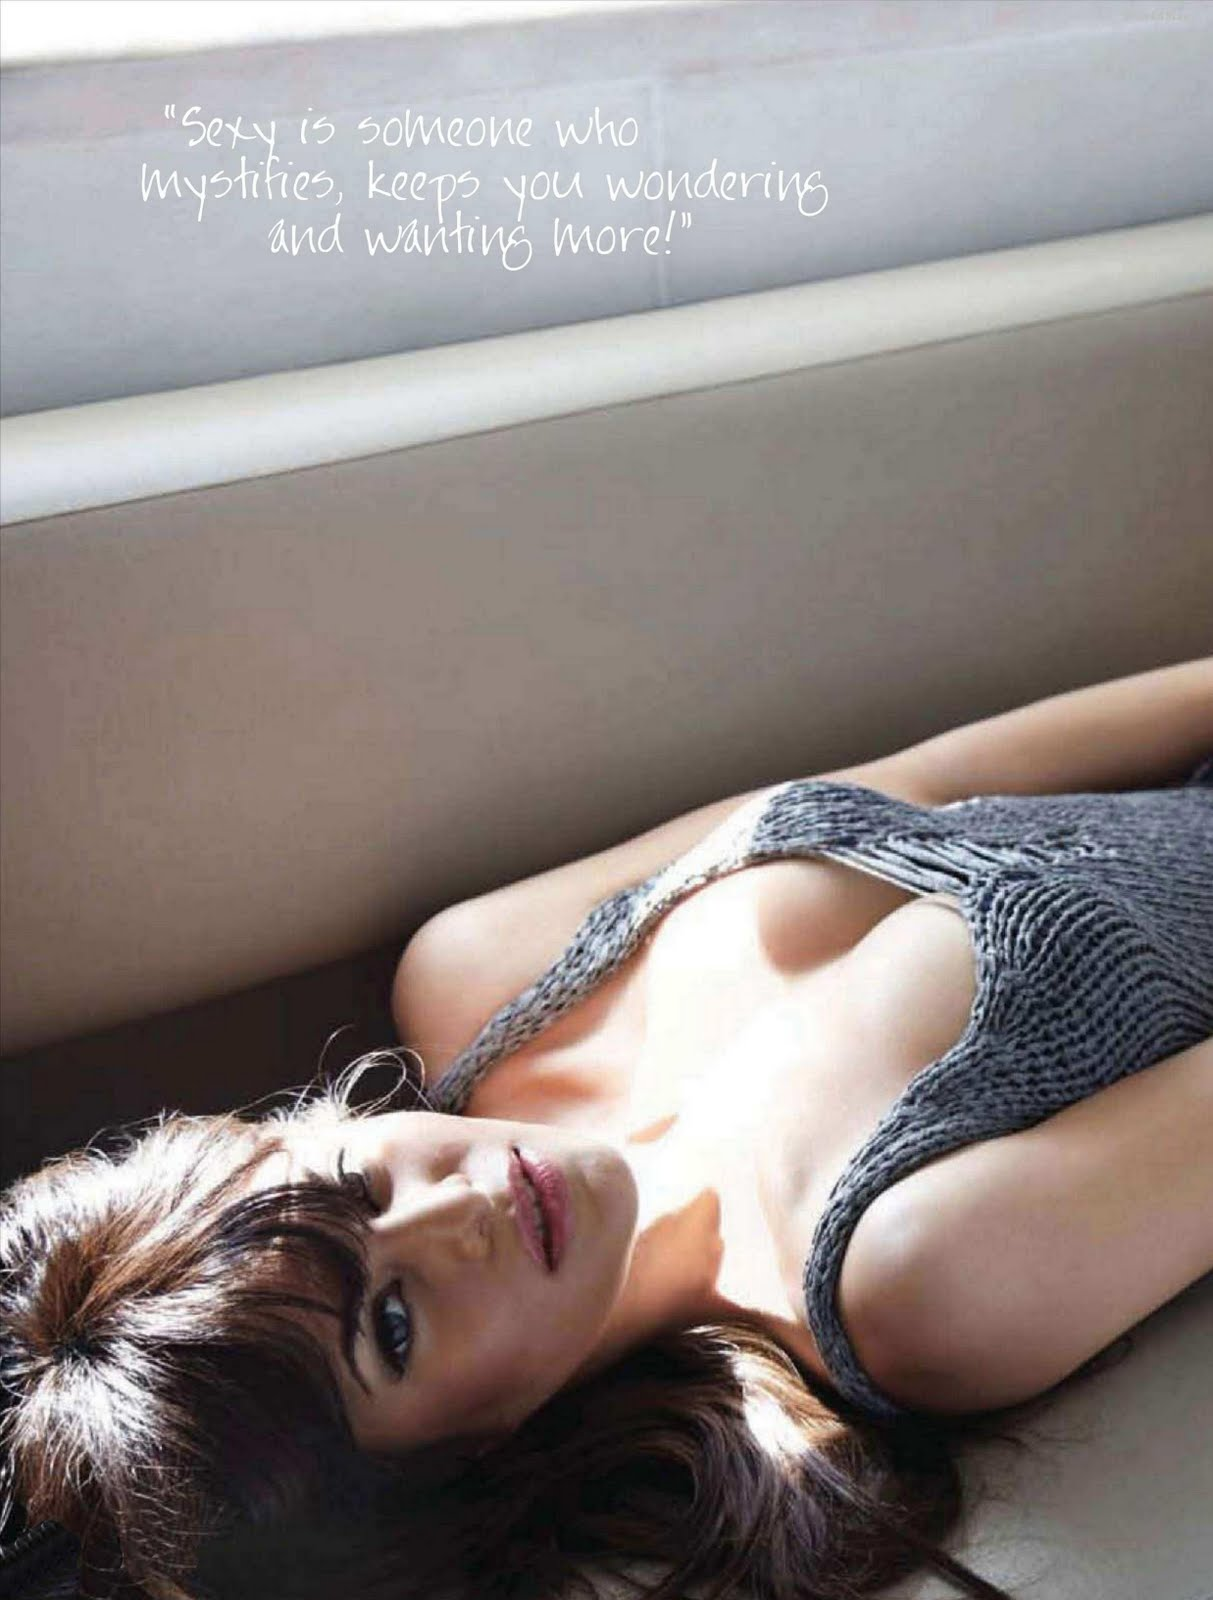 Jacqueline fernandez goes topless in a photo shoot